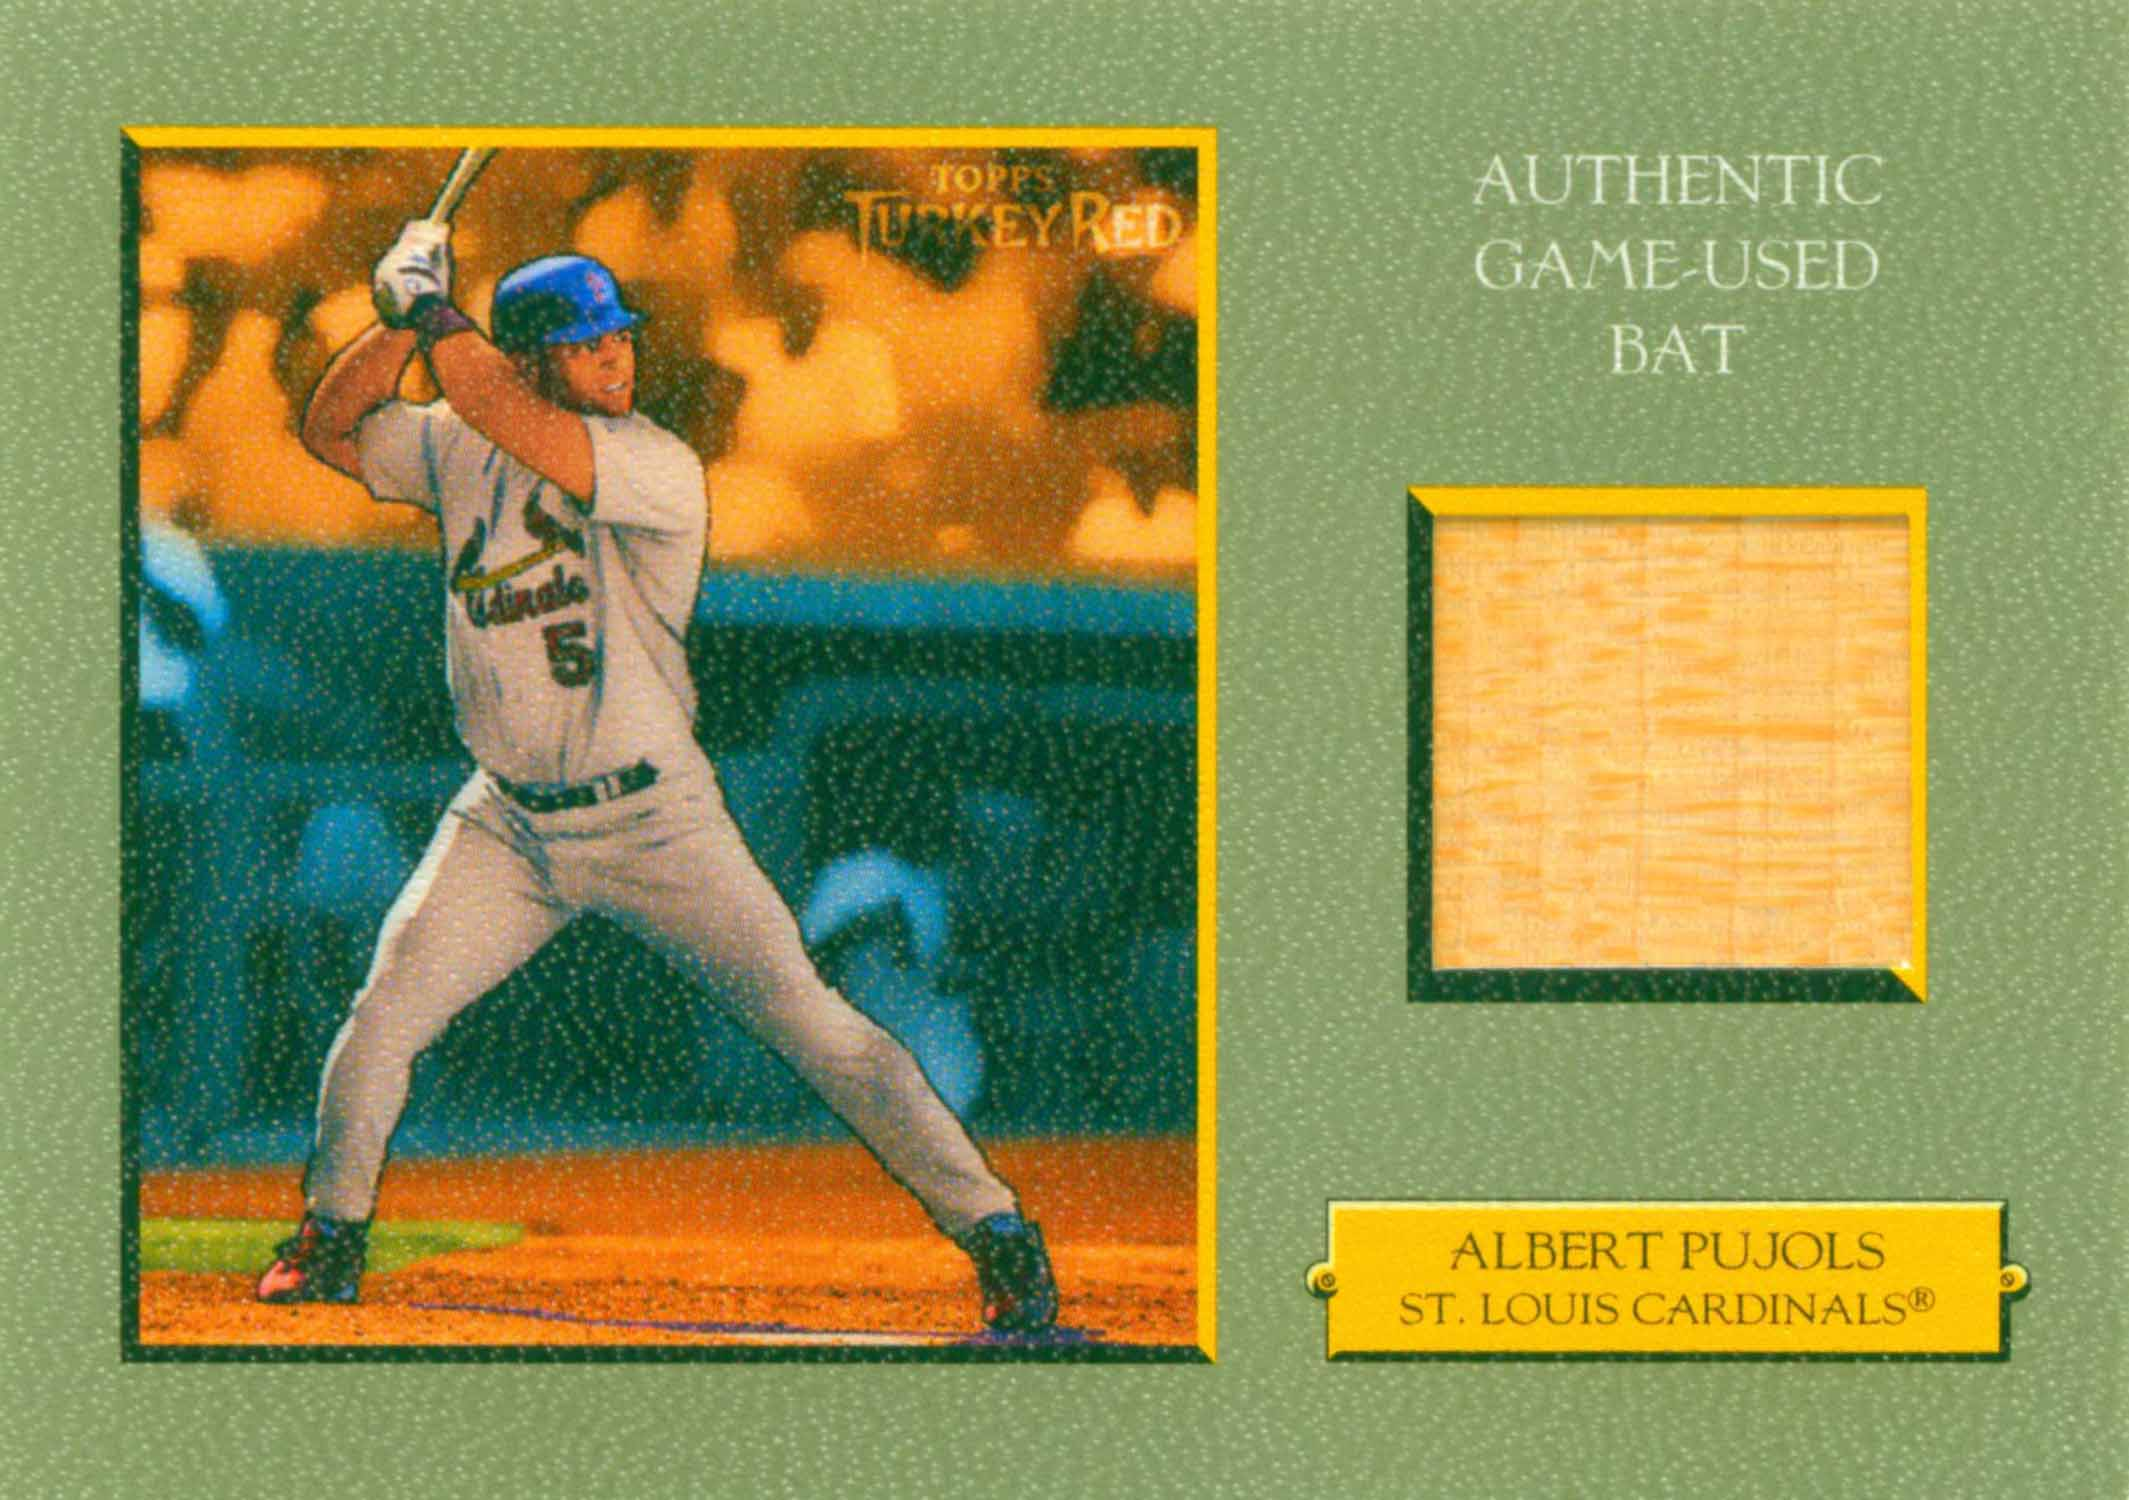 2005 Topps Turkey Red Relics Bat